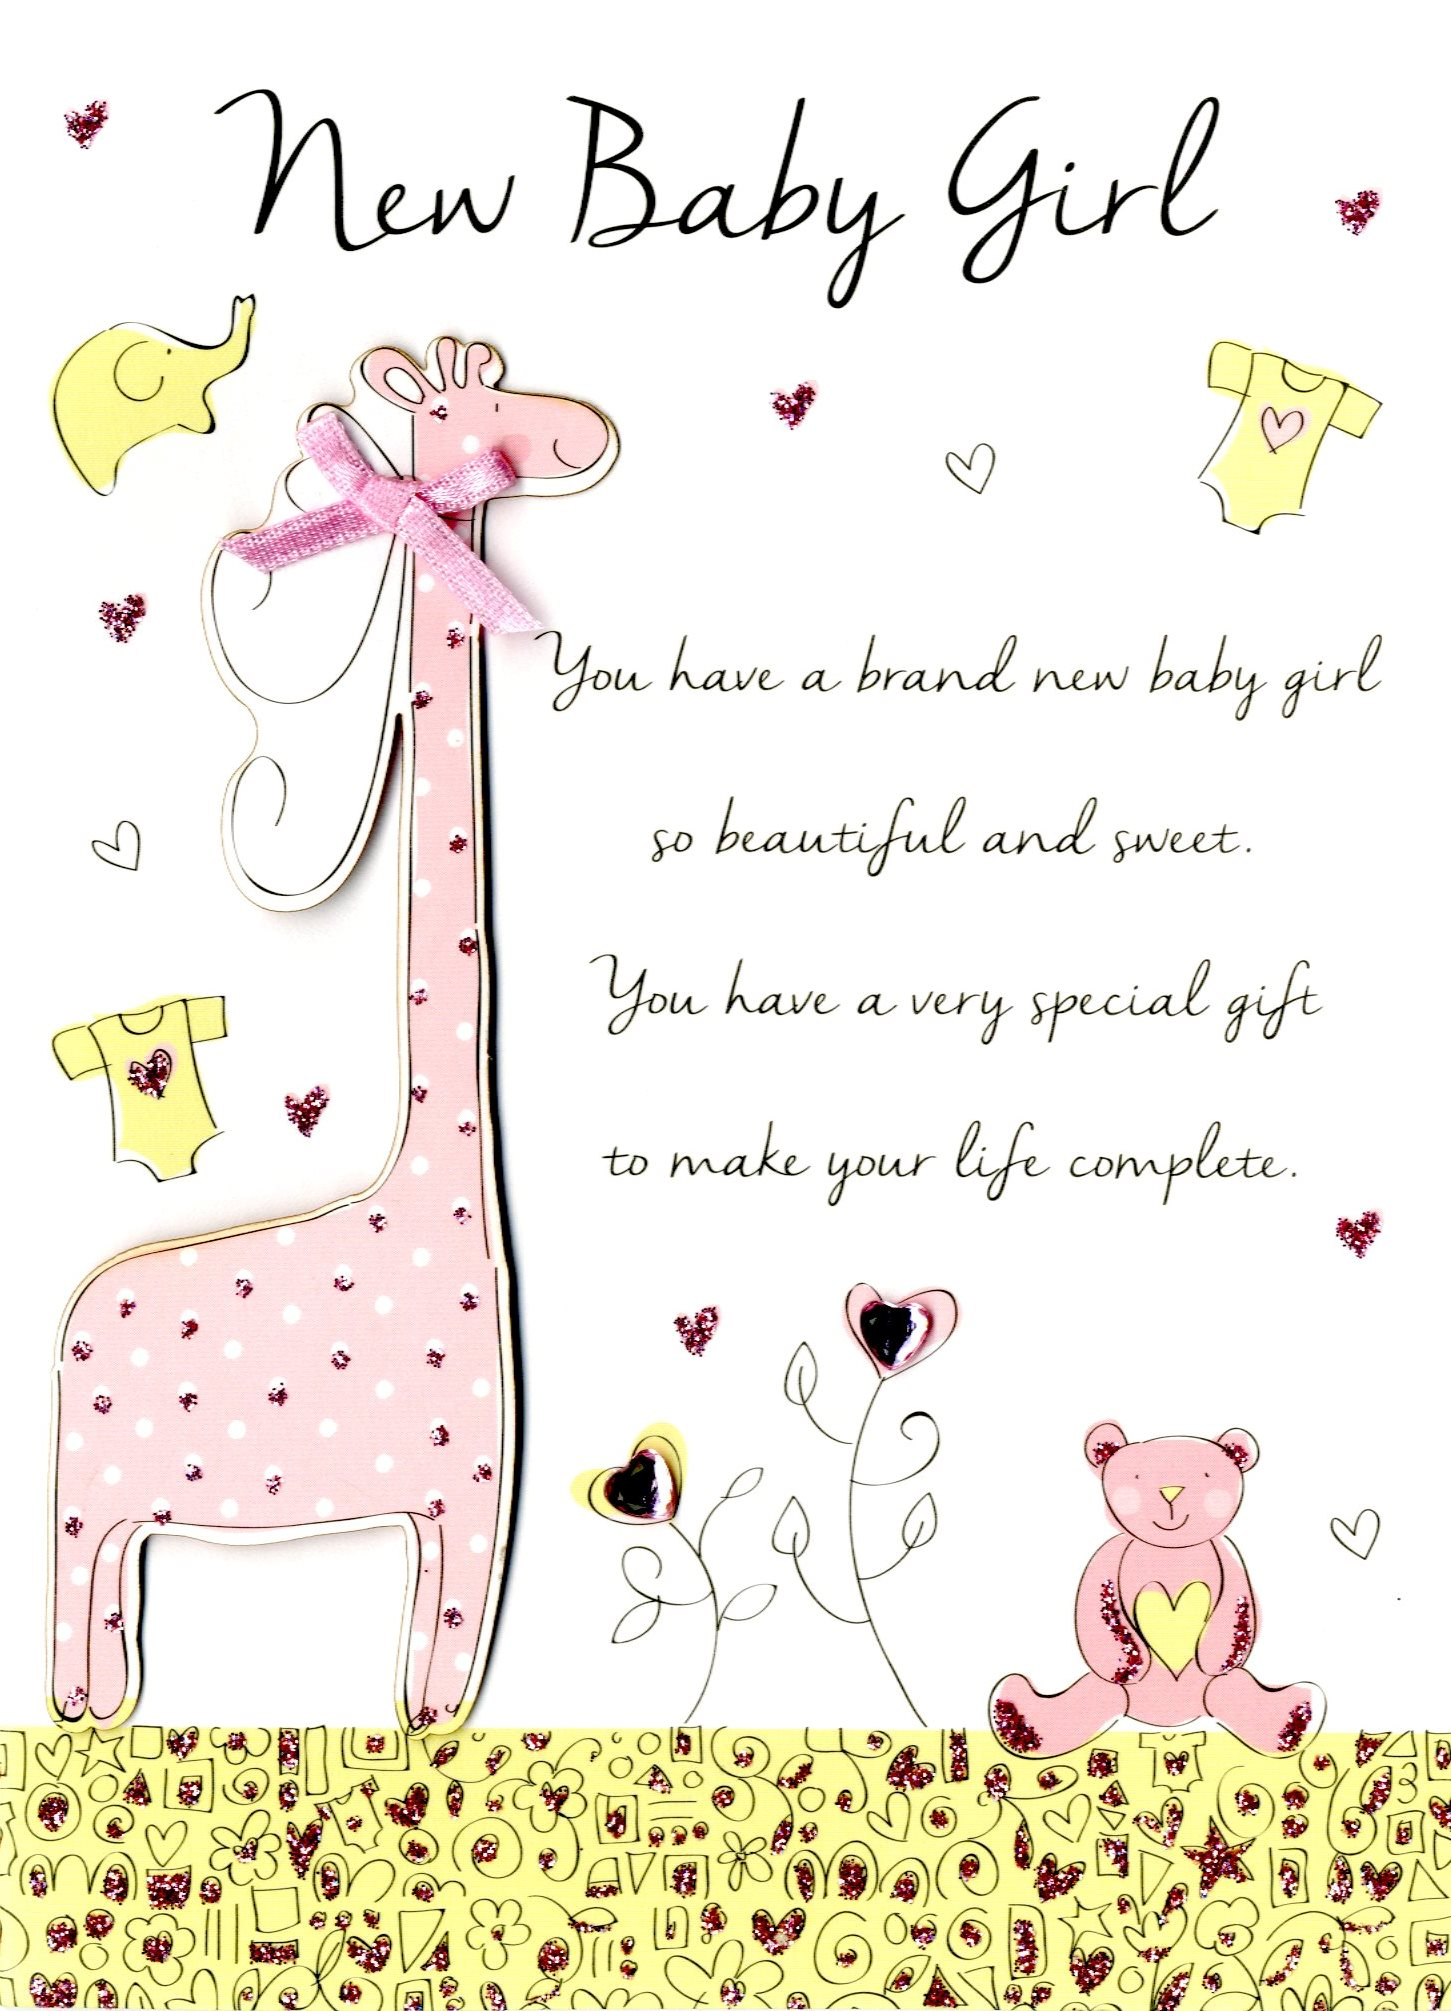 New baby girl congratulations greeting card cards love kates new baby girl congratulations greeting card kristyandbryce Images